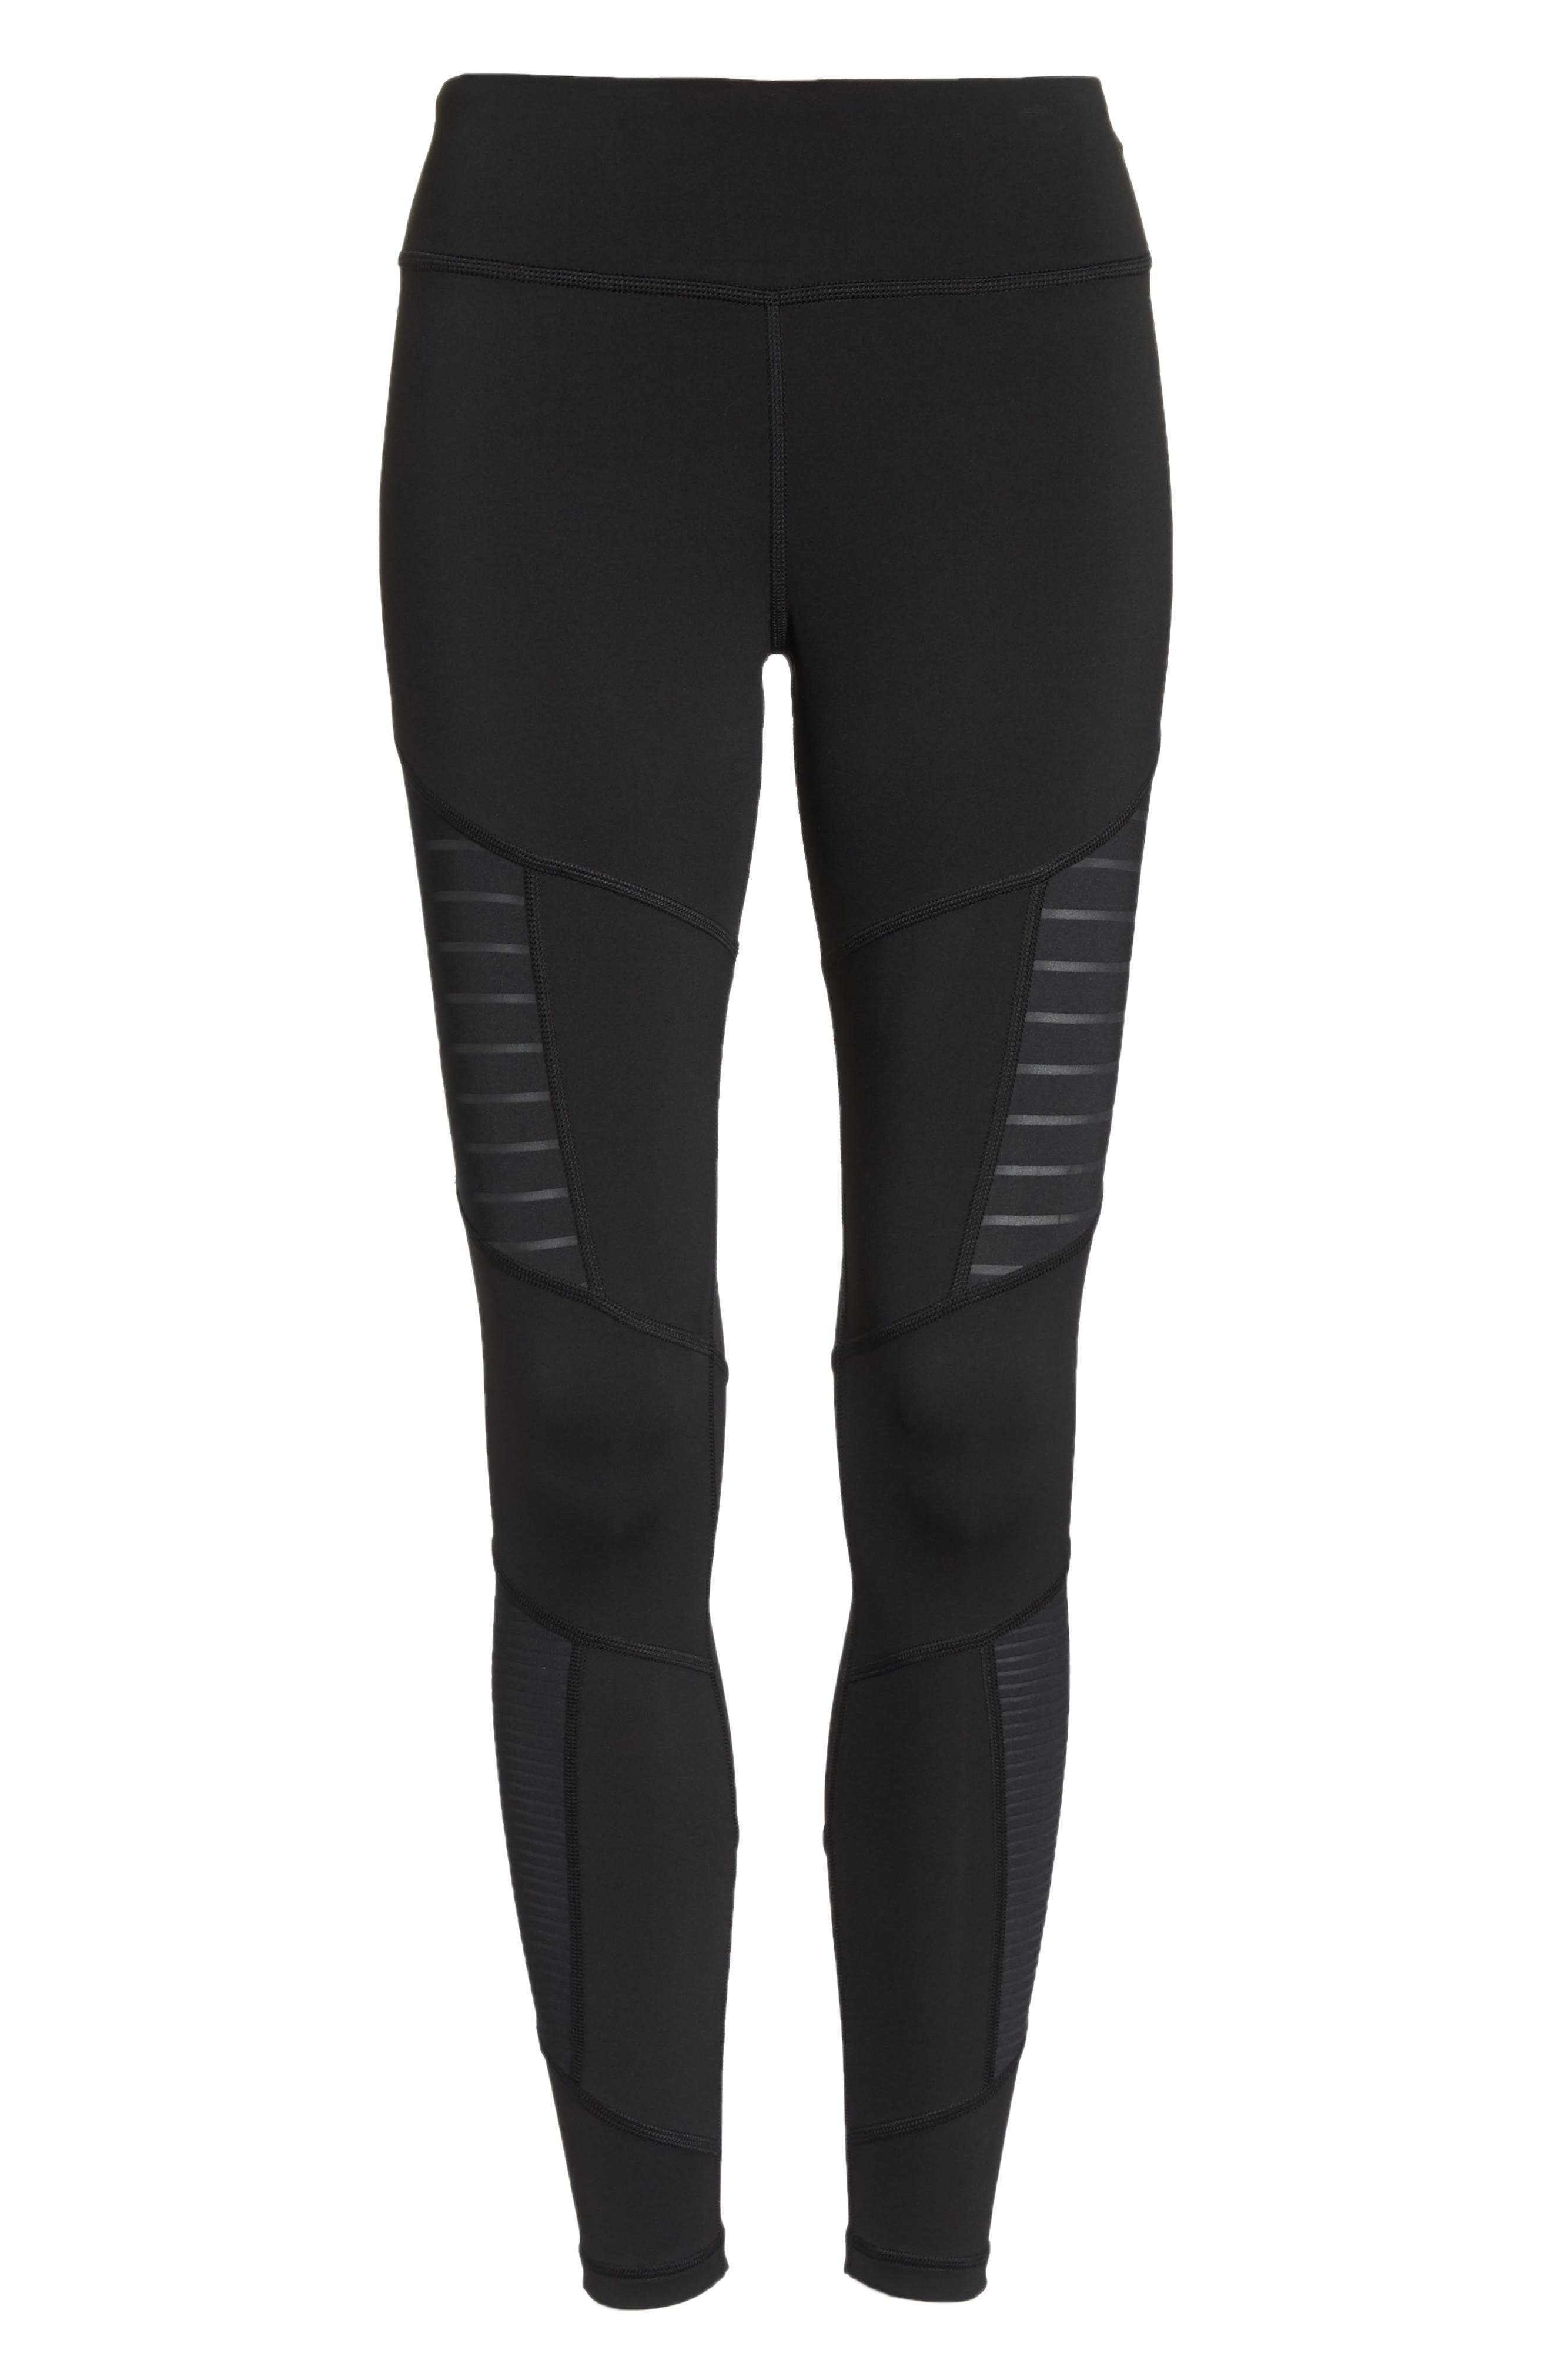 Mesh Leggings,                             Alternate thumbnail 7, color,                             005